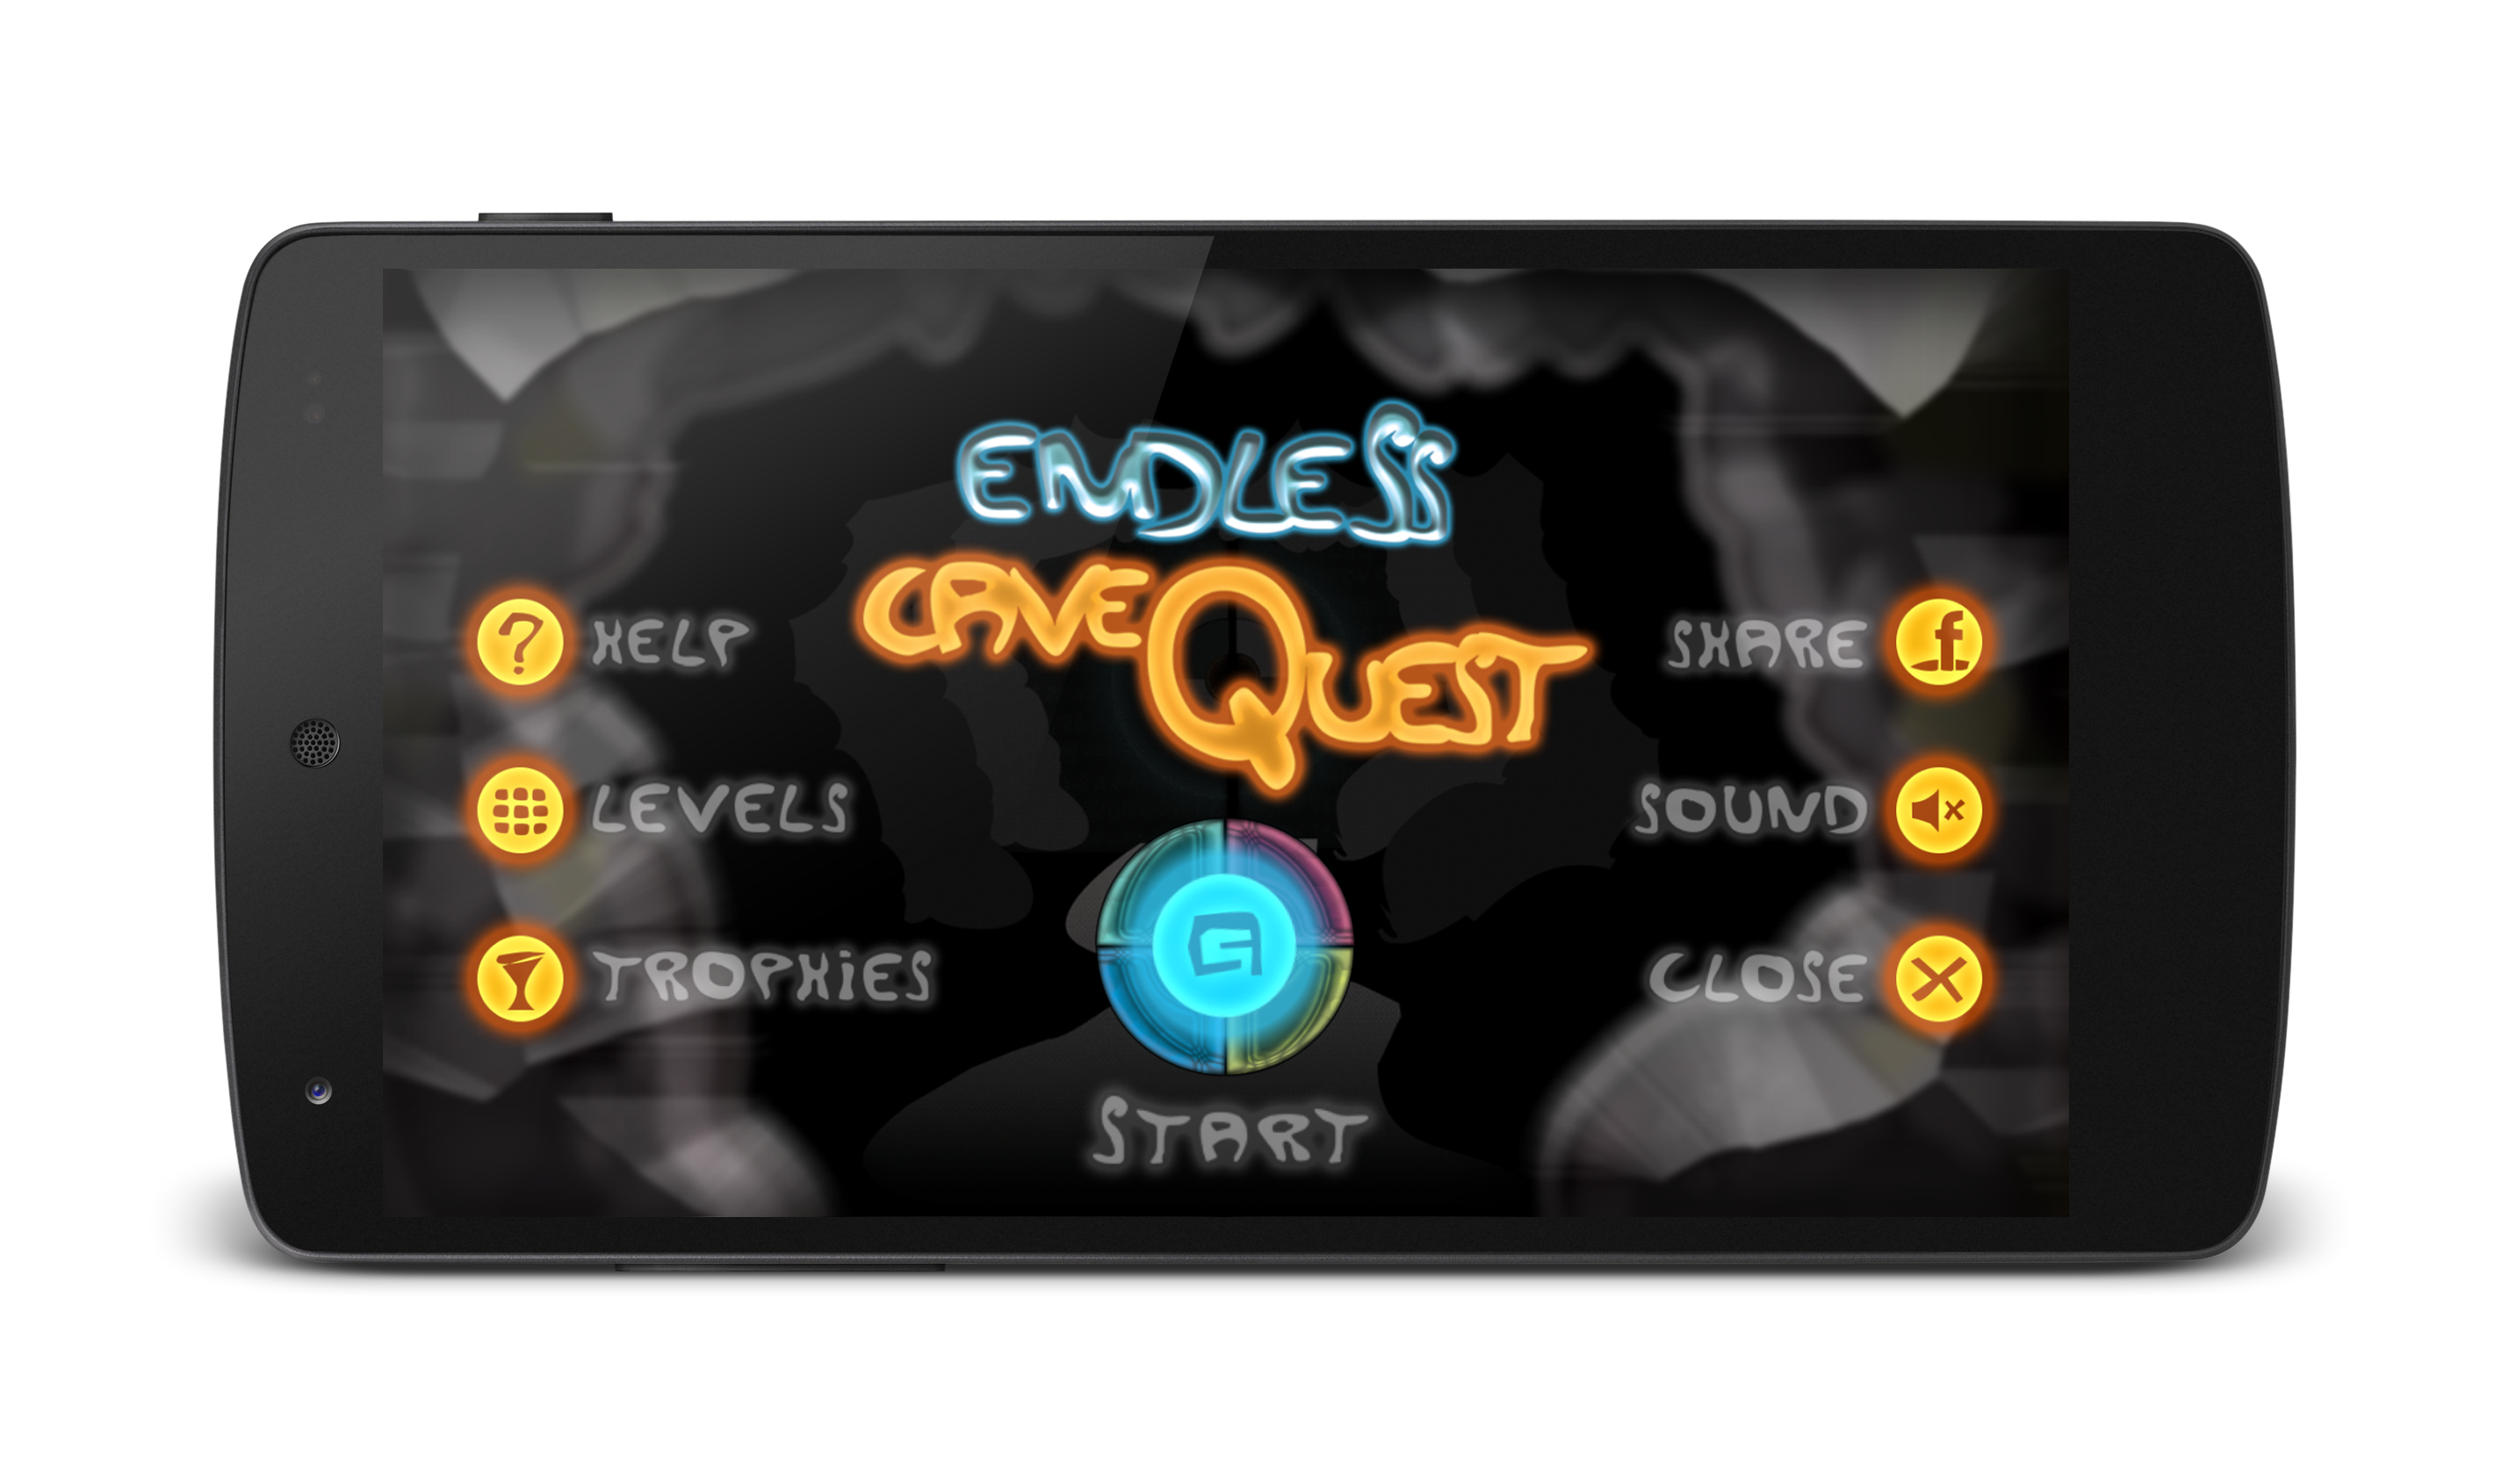 Endless Cave Quest